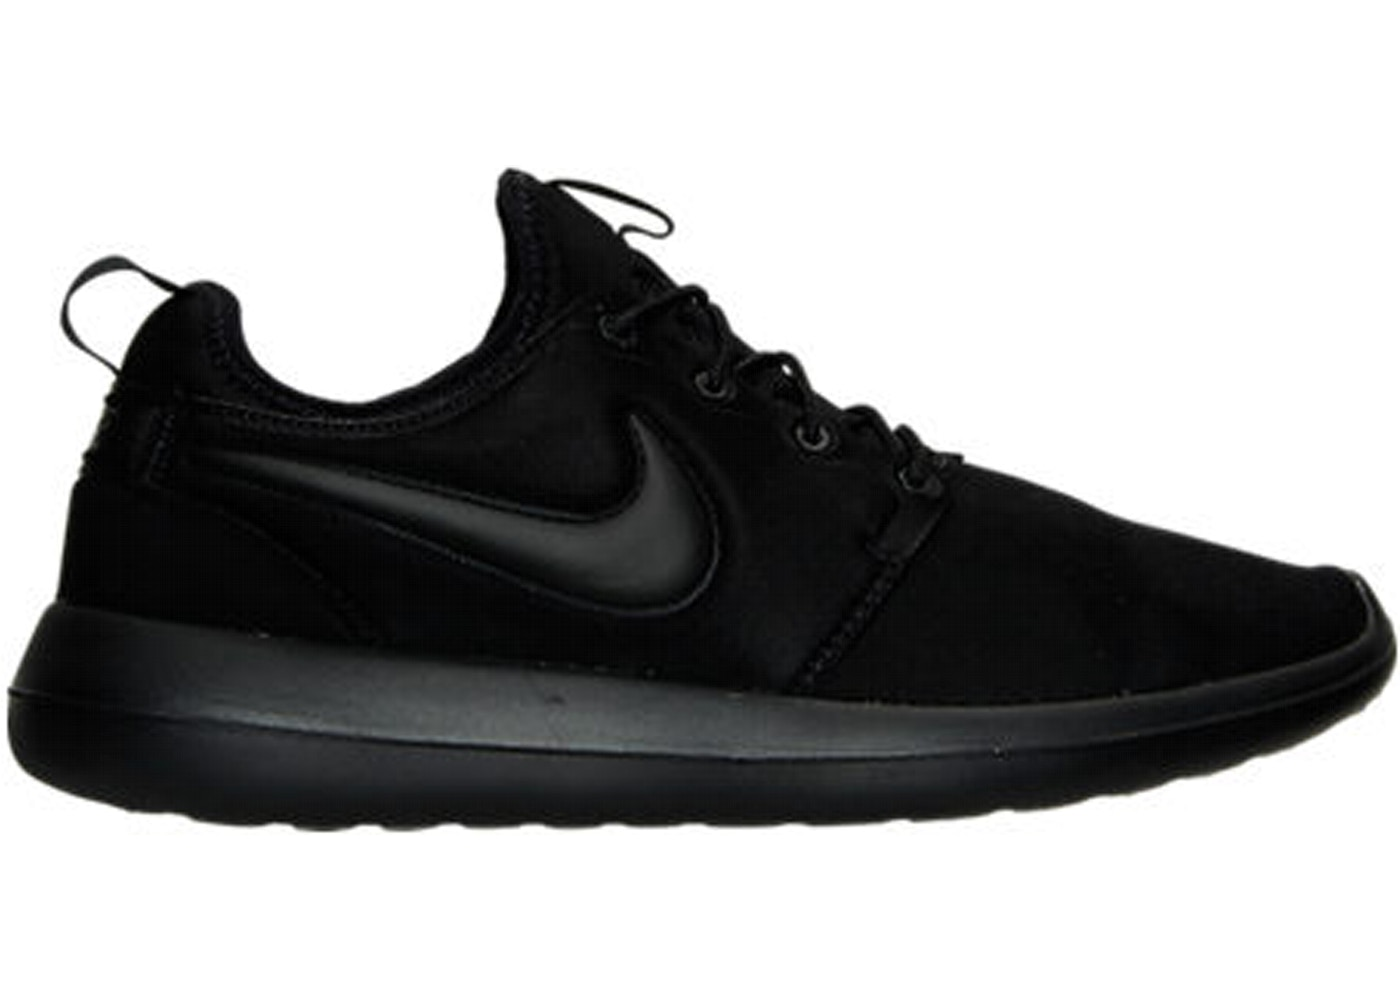 MEN'S NIKE ROSHE TWO 844656 001 BLACK/BLACK-BLACK DEADSTOCK BRAND NEW